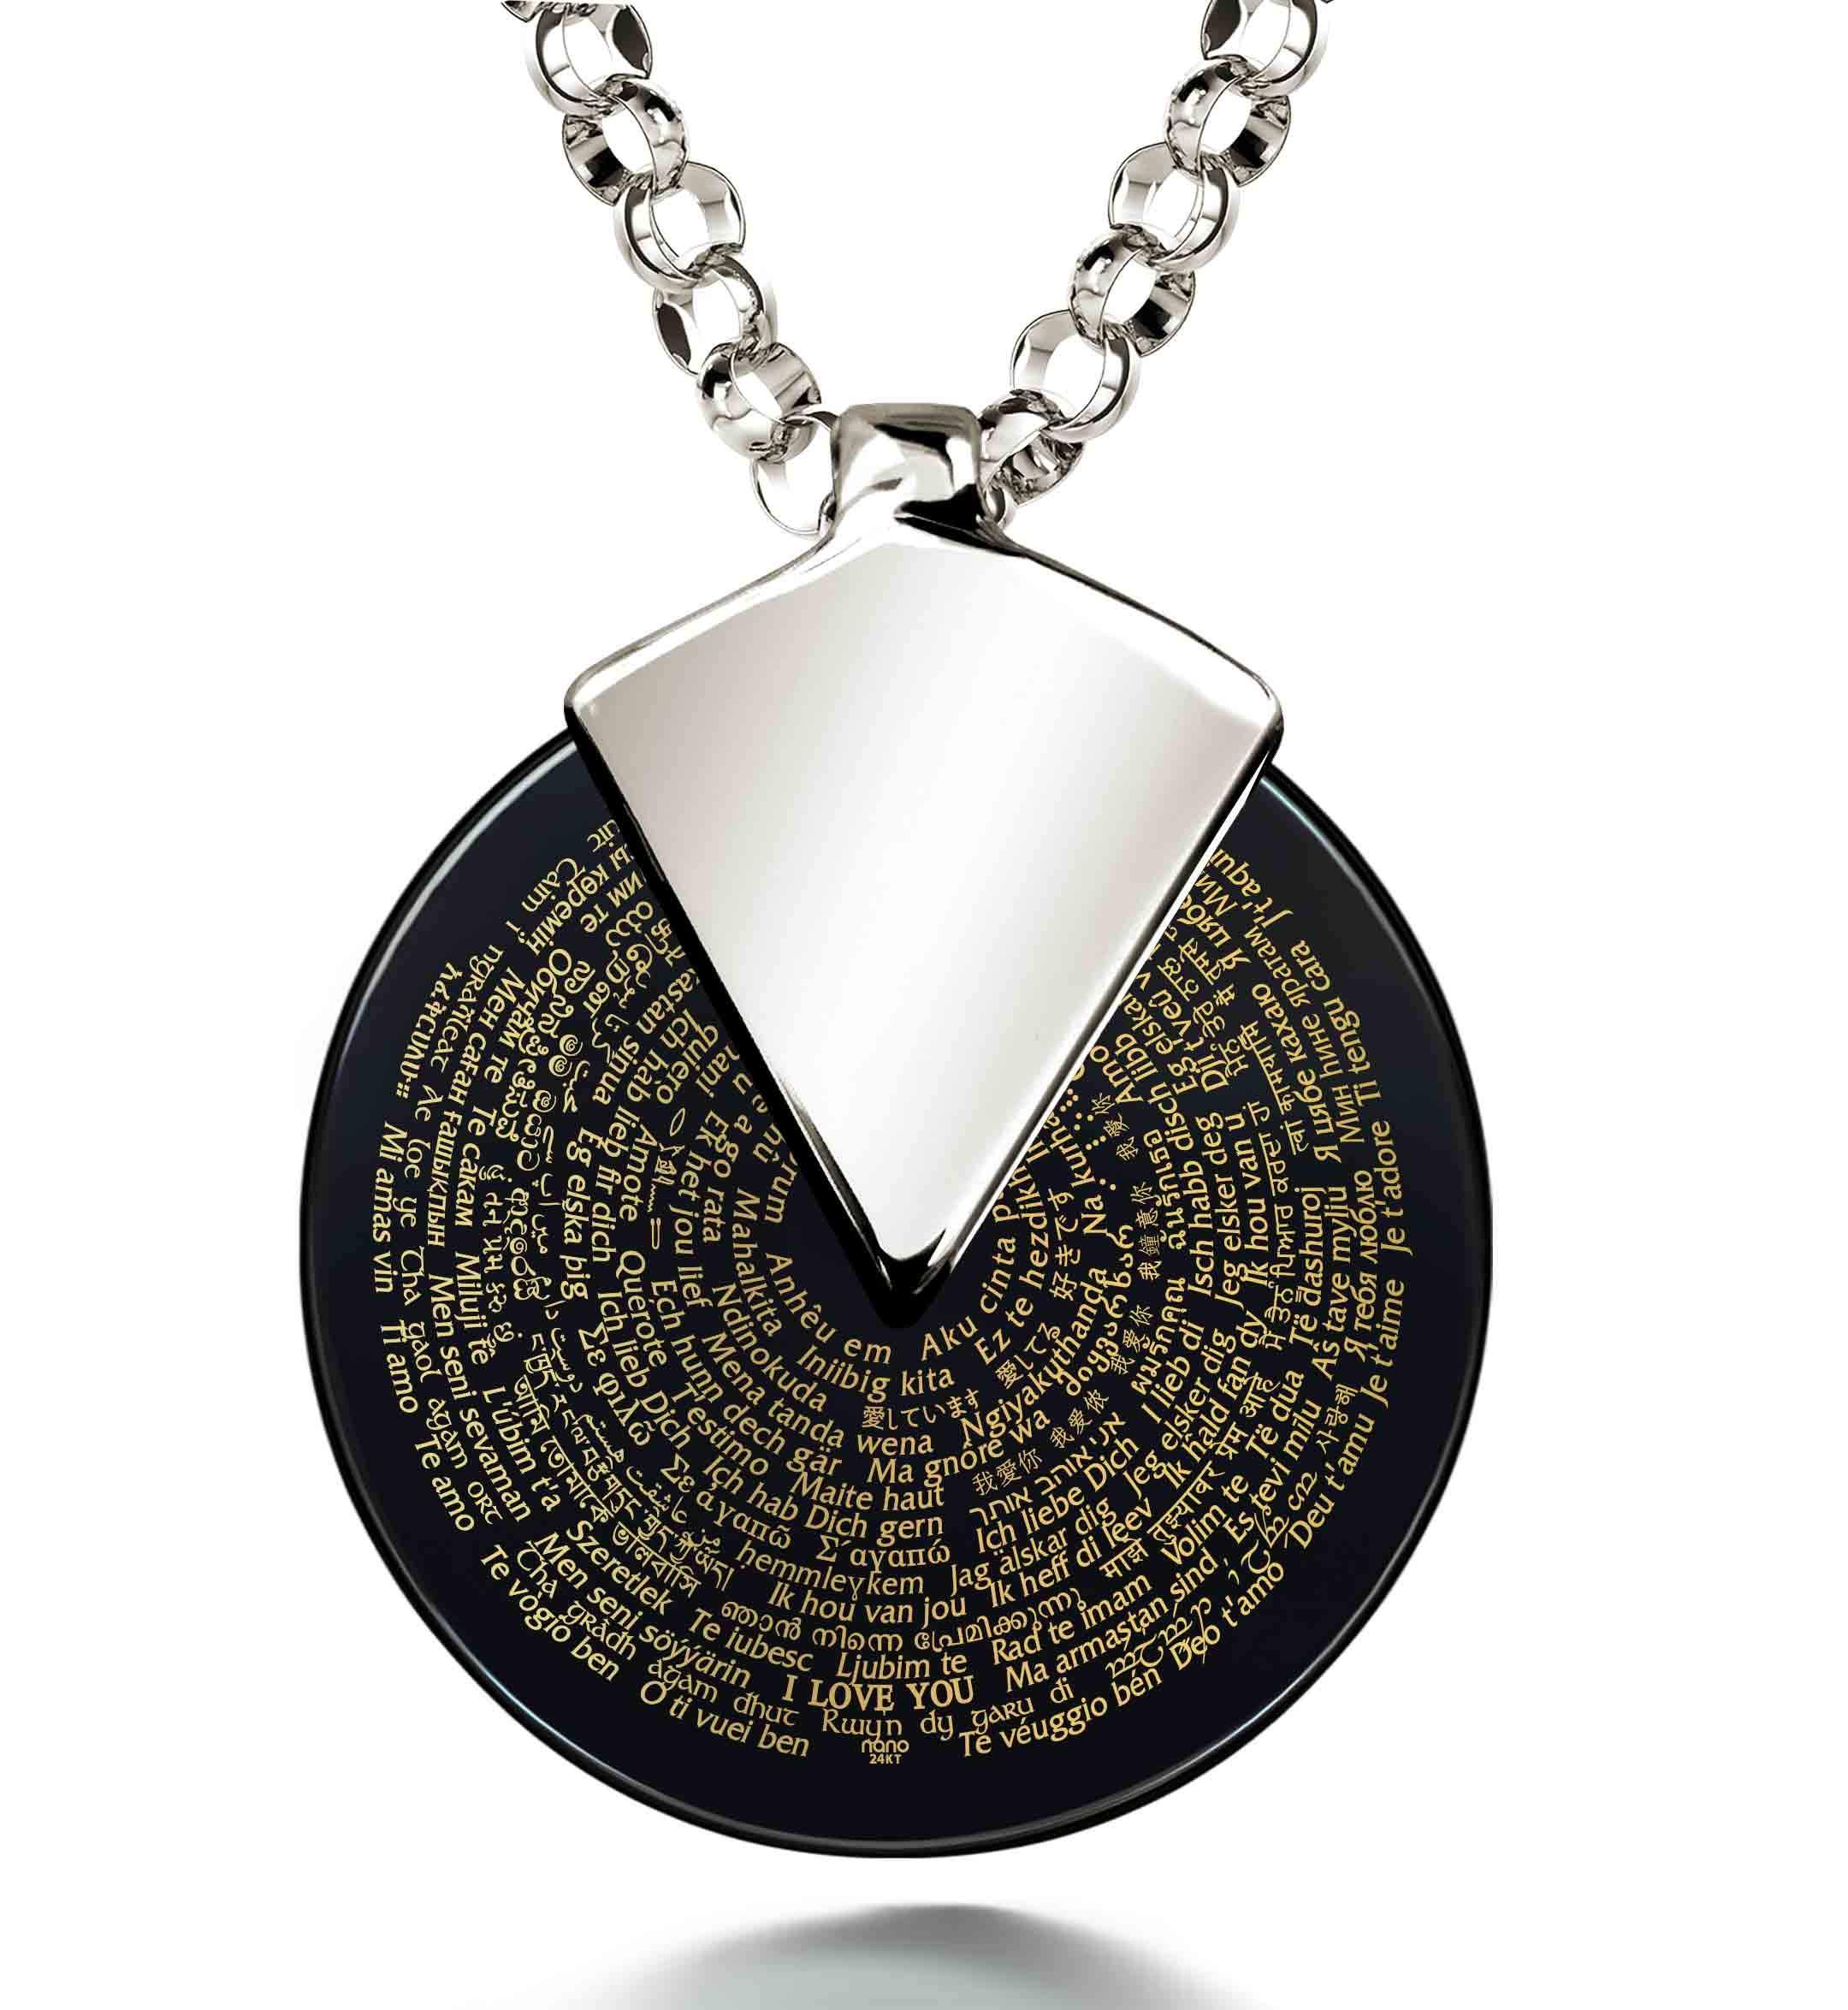 Awesome Valentines Day Gifts for Her - Love Necklaces in 120 Languages - Nano Jewelry